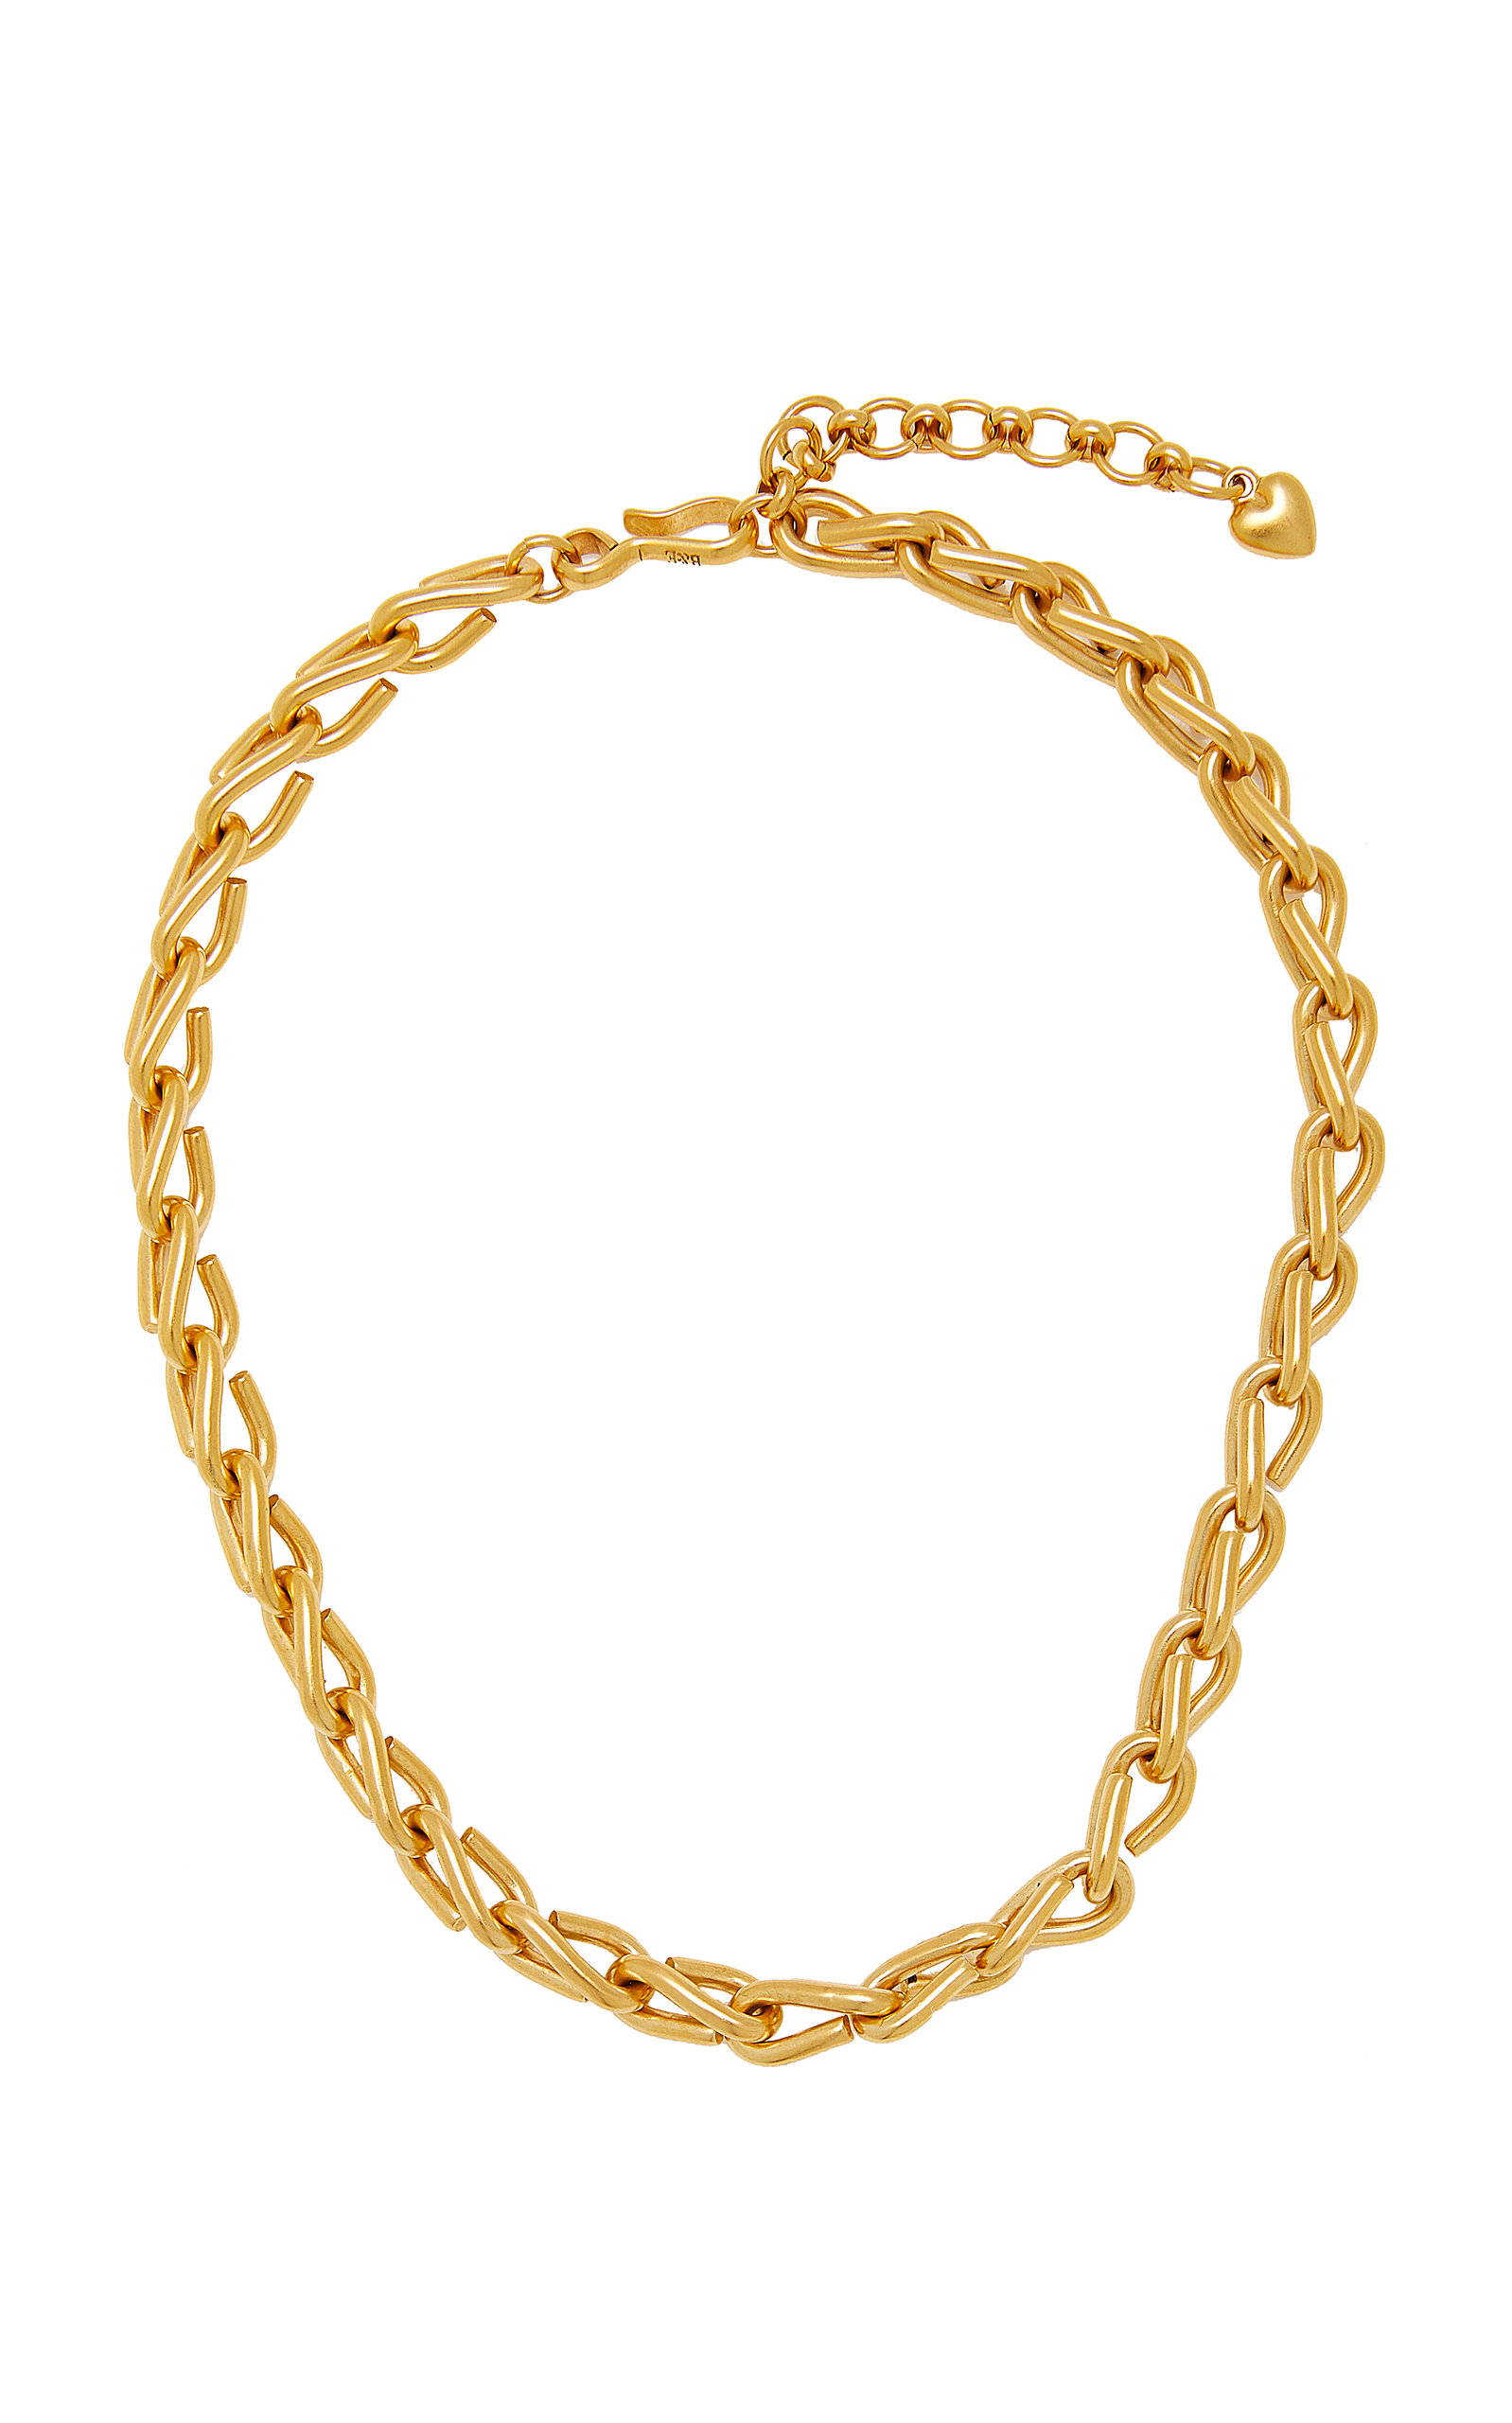 Women's Harley 24k Gold-Plated Chain Necklace